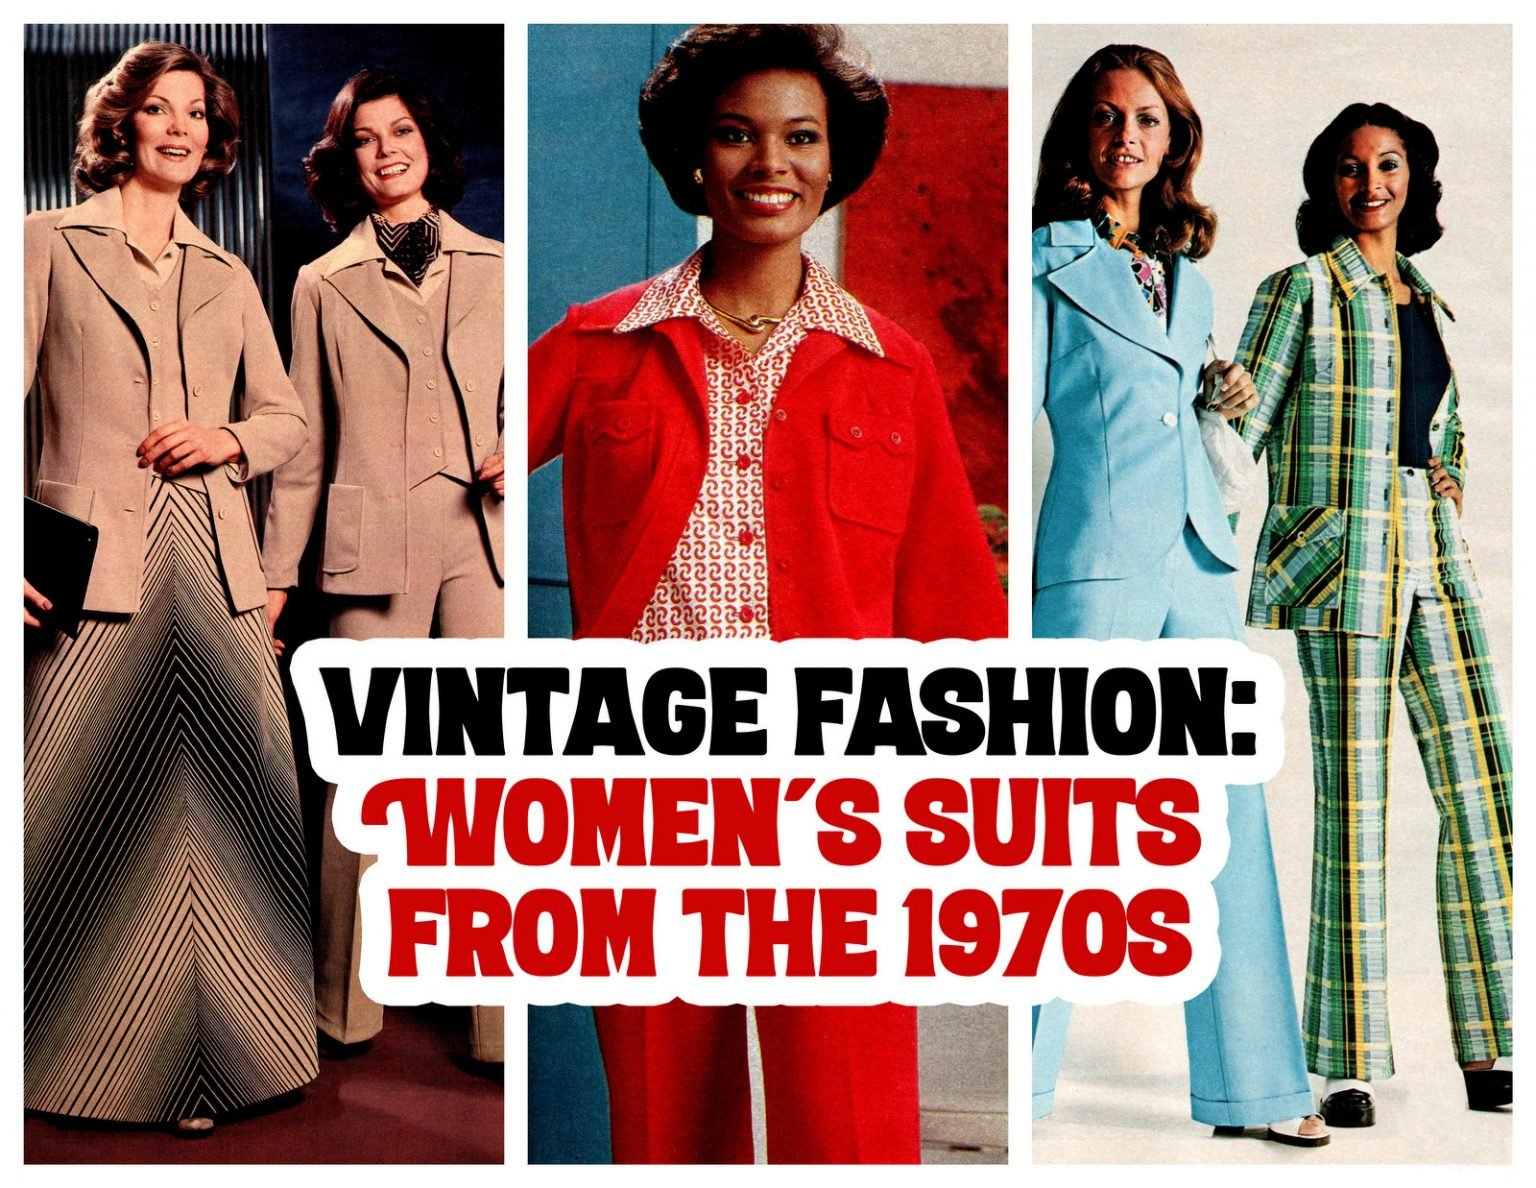 Vintage fashion Women's suits from the 1970s